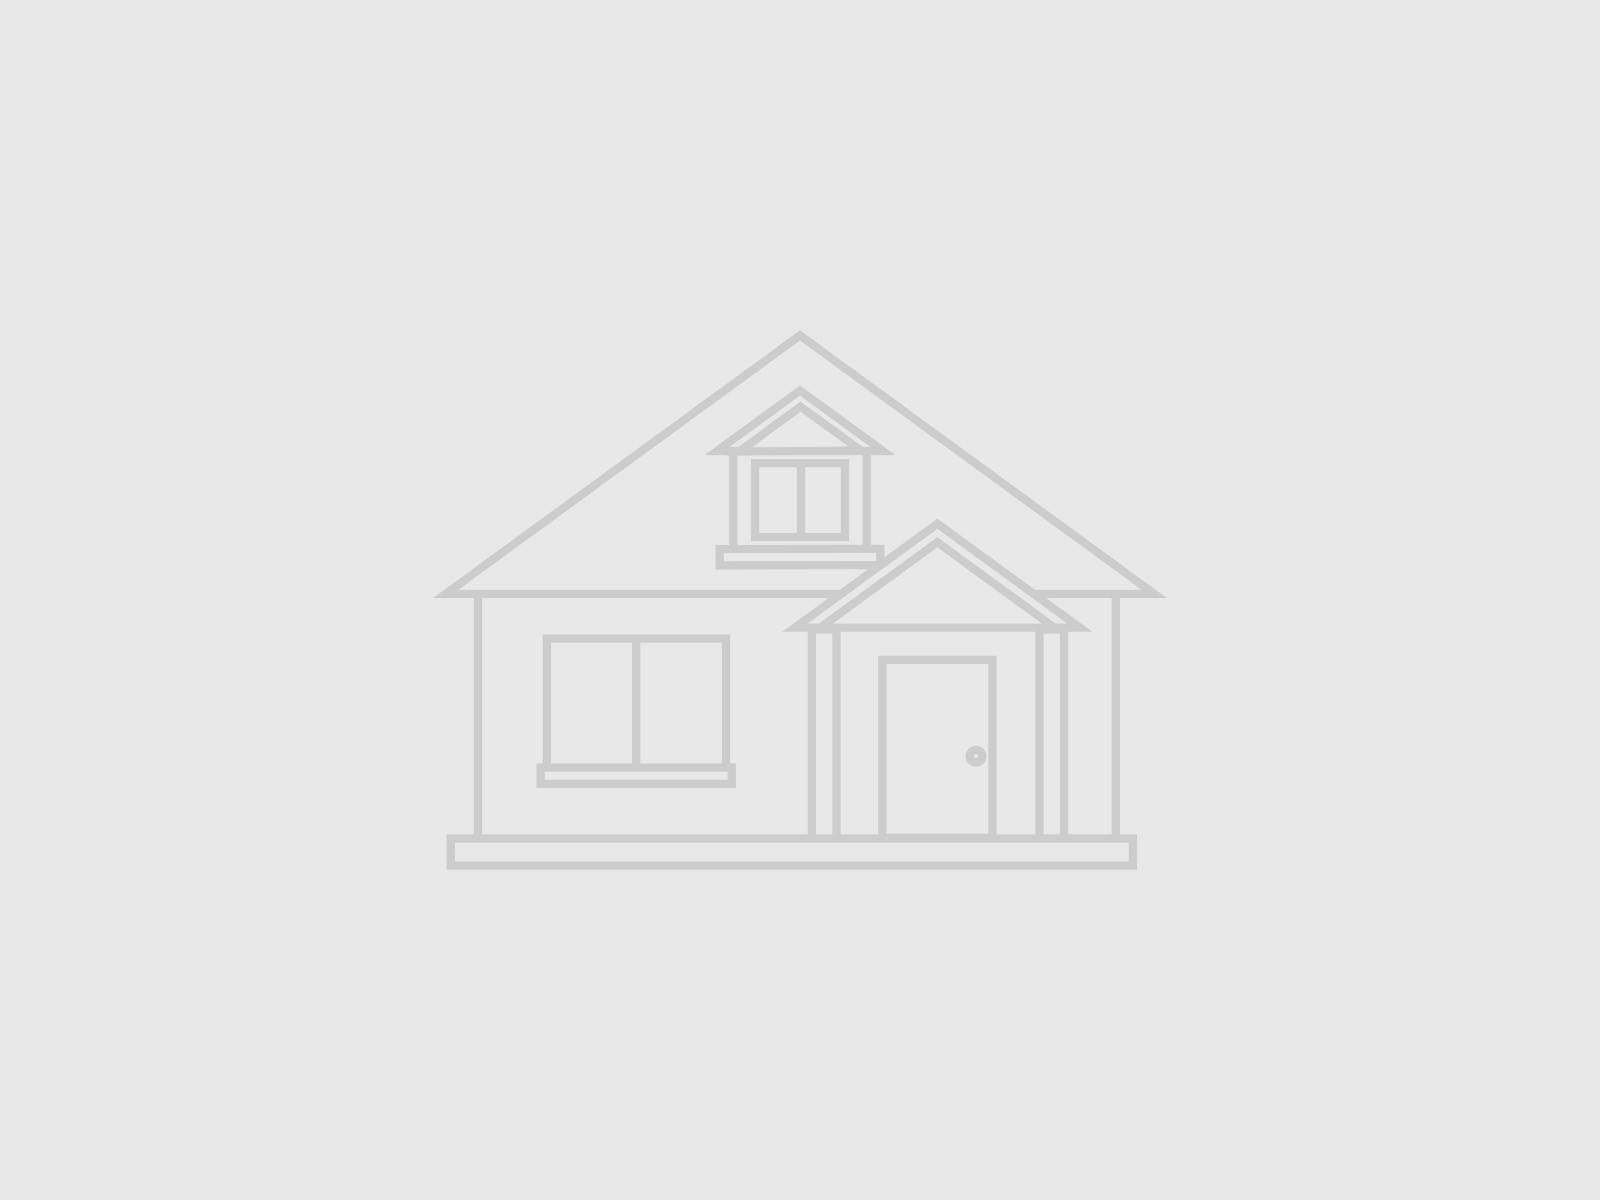 Single Family Homes for Sale at 172 Henderson Street Bensenville, Illinois 60106 United States